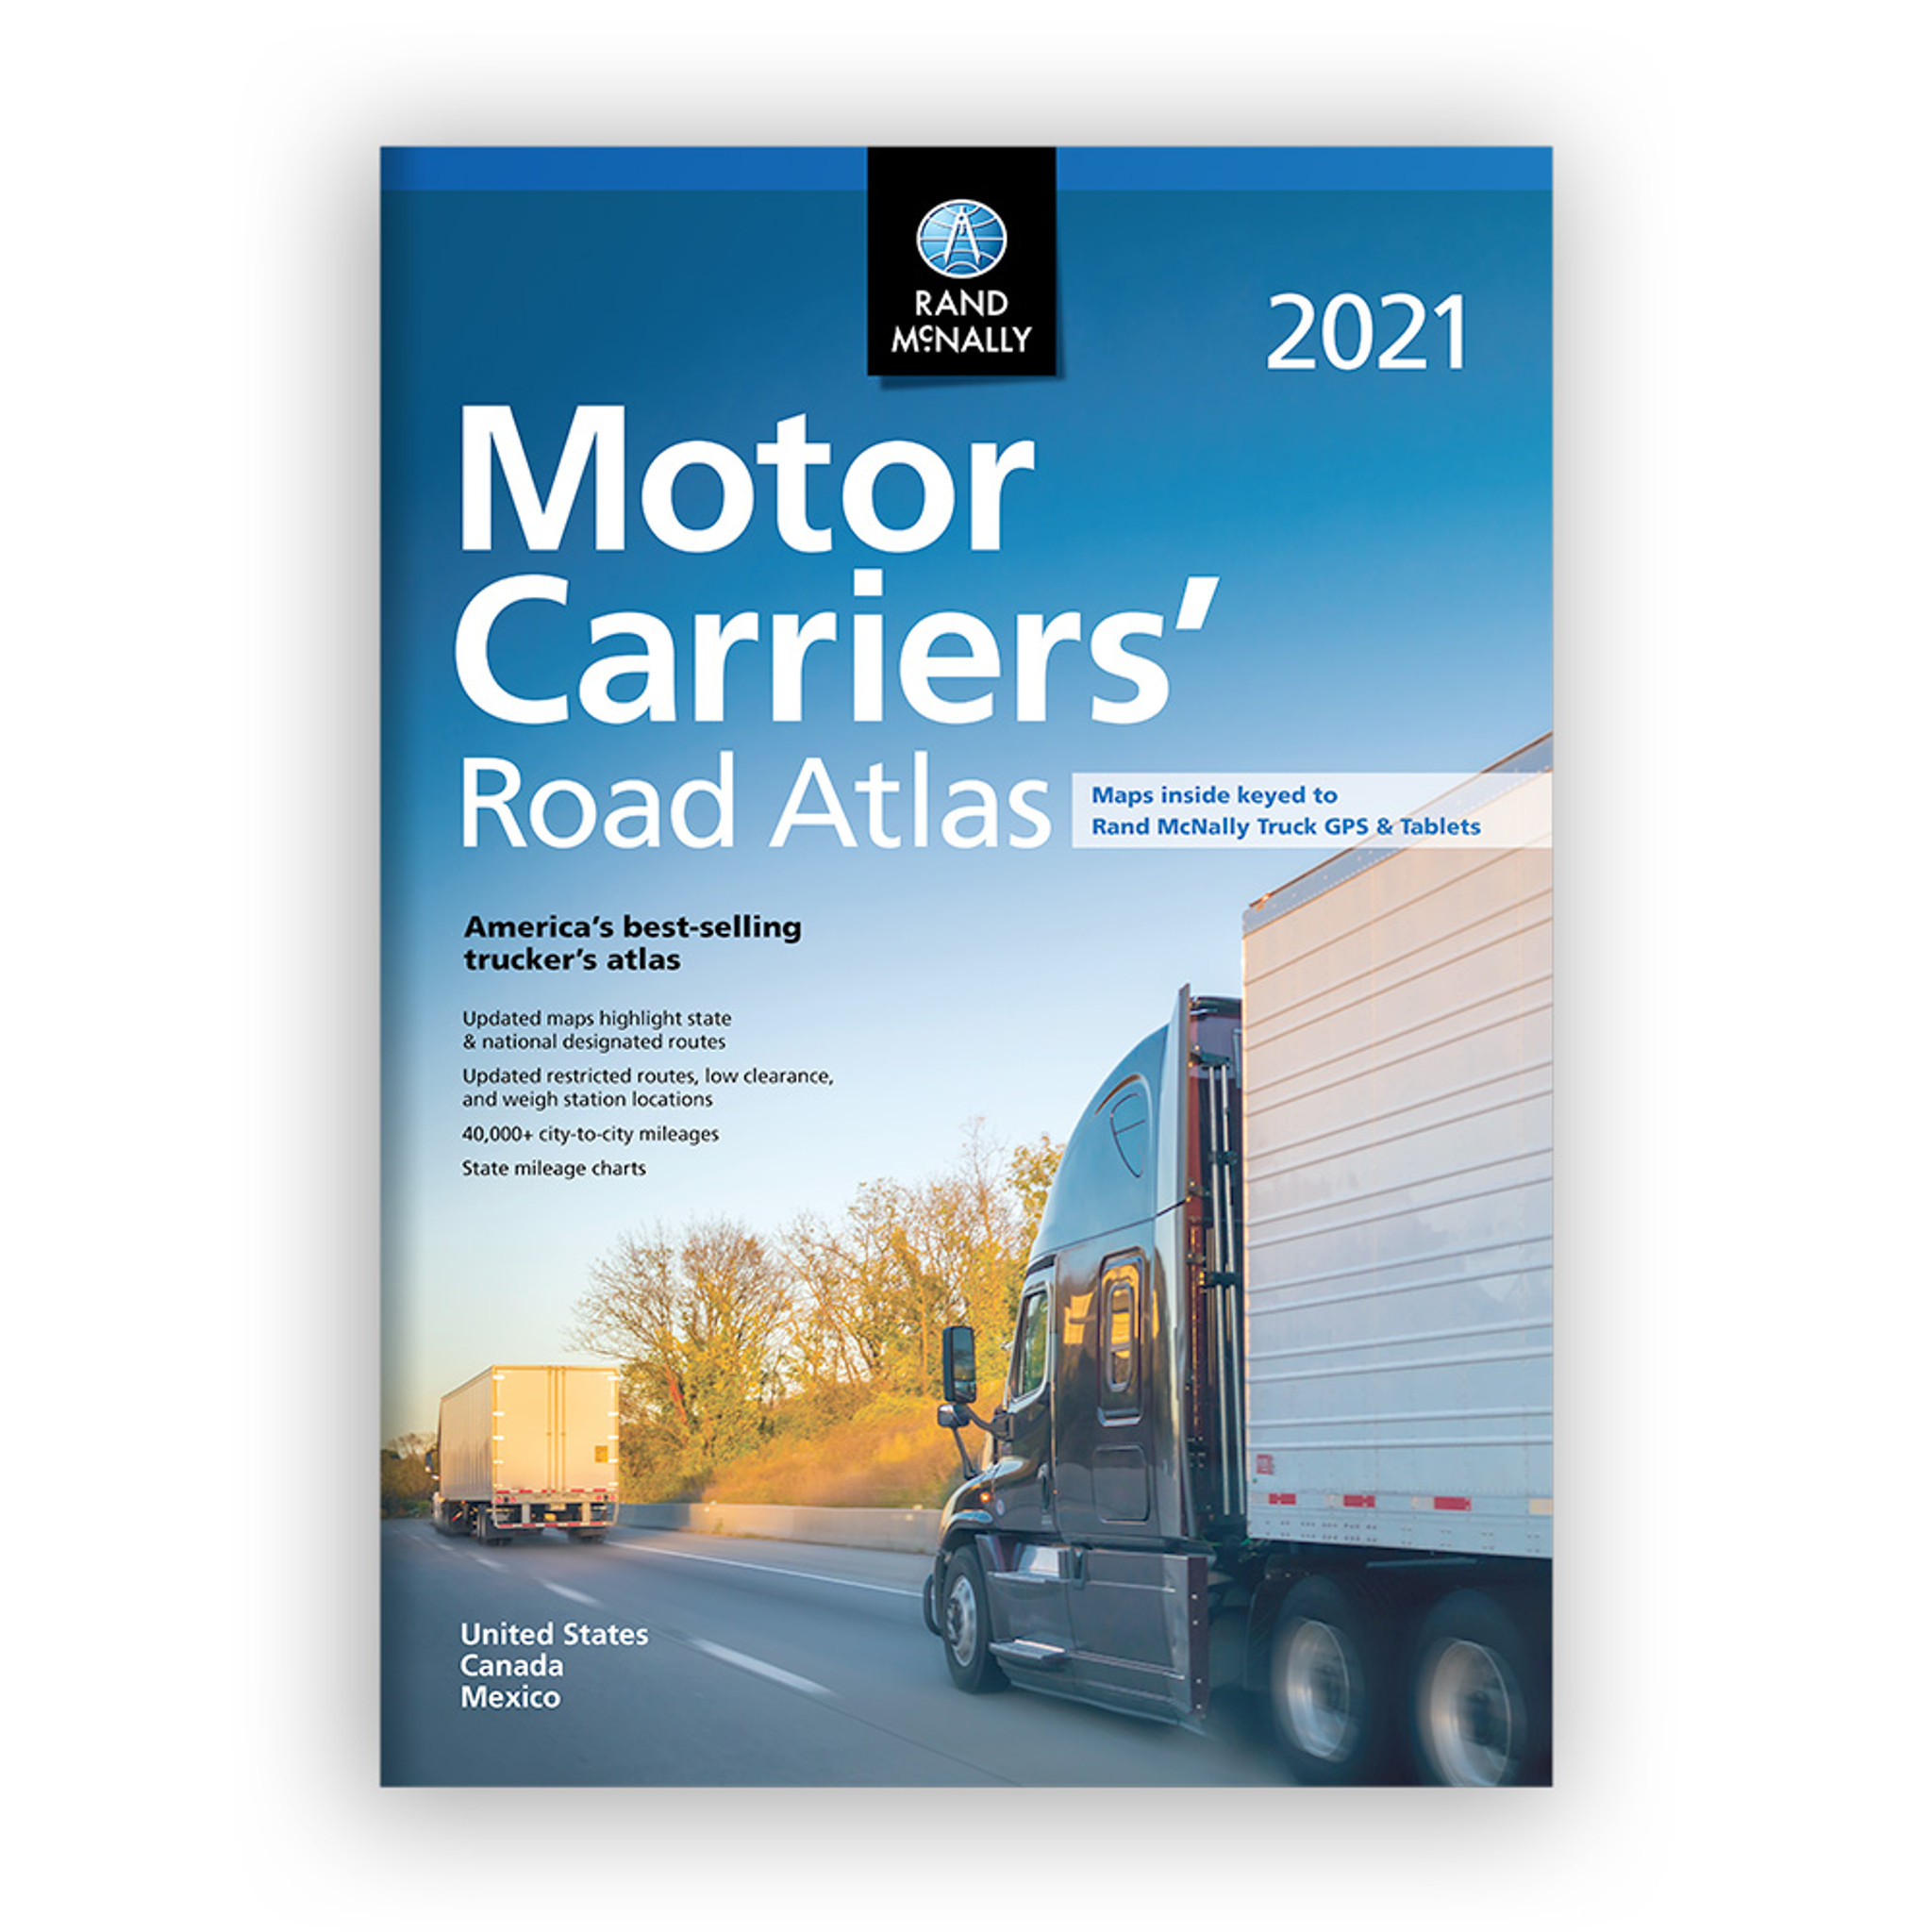 2021-Motor-Carriers-Road-Atlases_1000px_